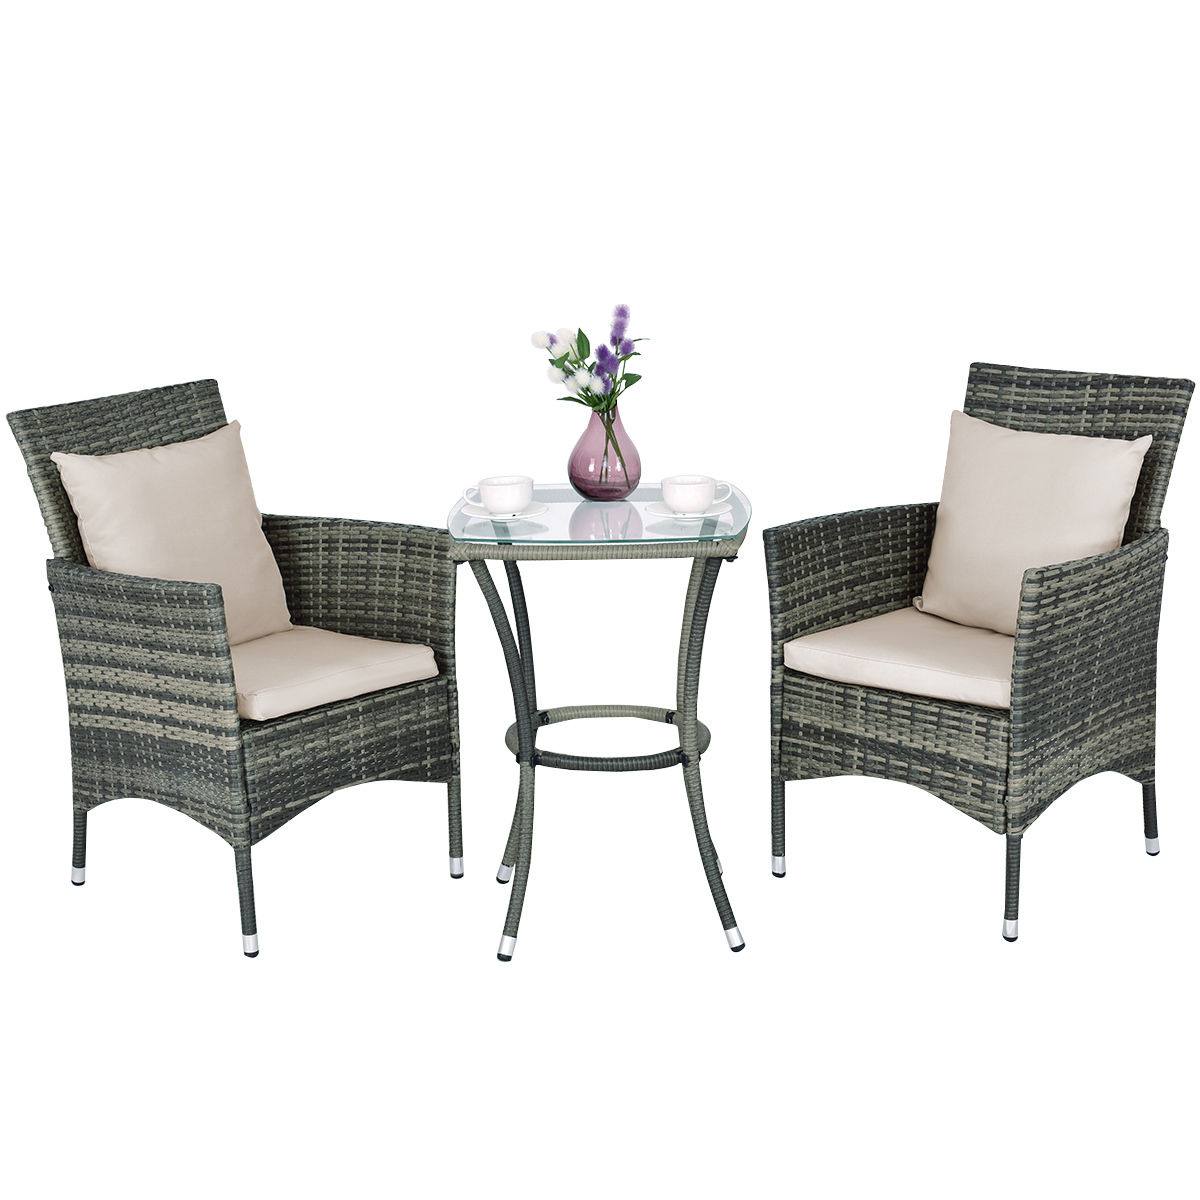 Costway 3PCS Patio Rattan Furniture Set Chairs & Table Garden Coffee by Costway